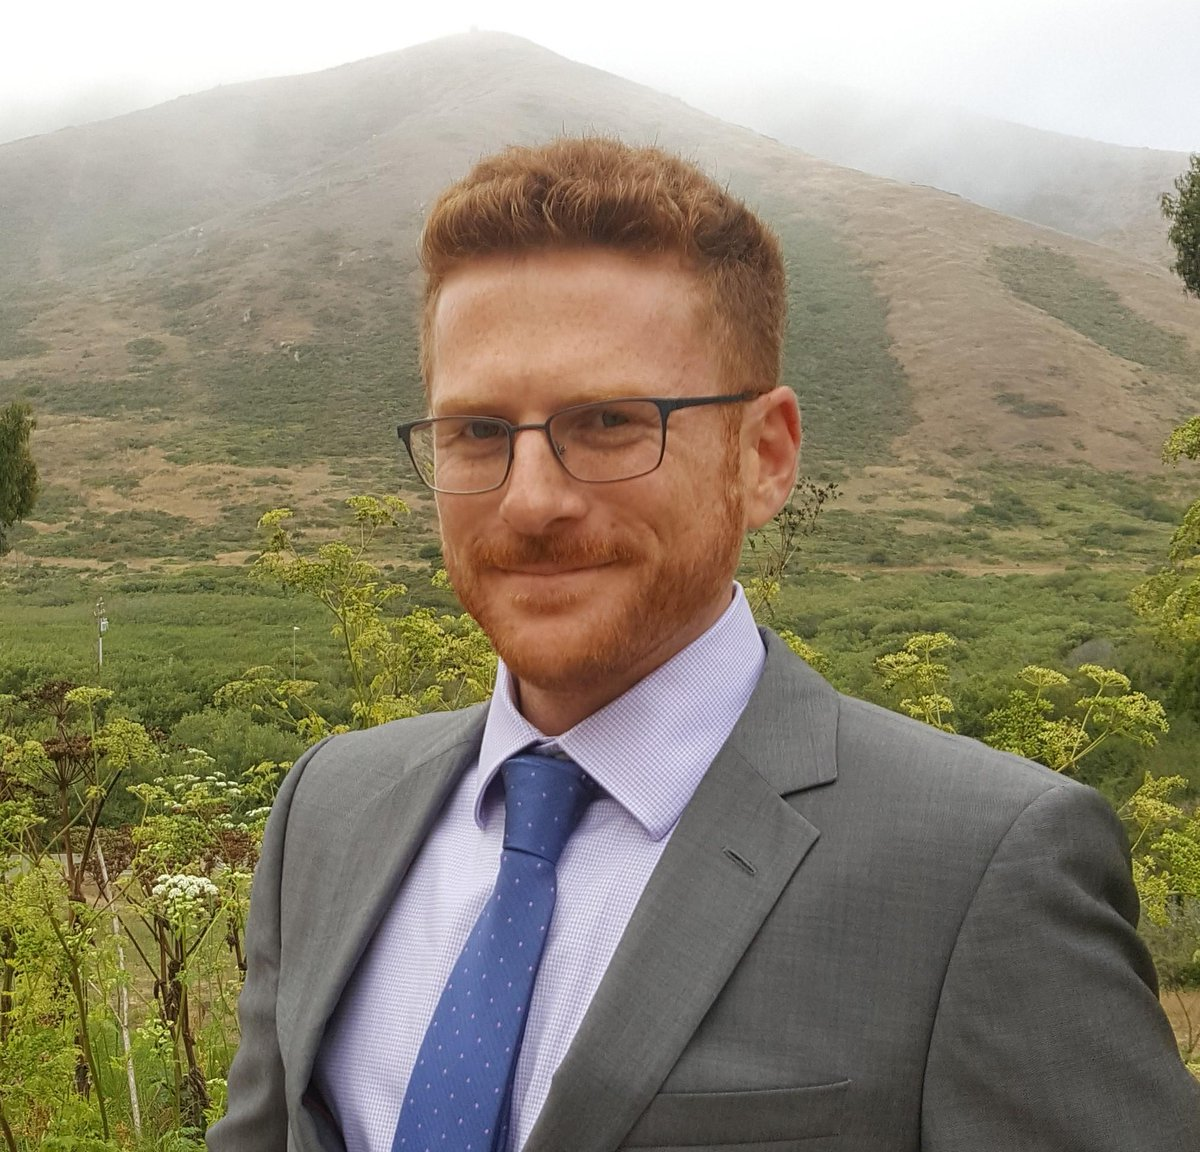 Please welcome our new spa manager, Ryan Shulman. We look forward to the positive influence Ryan will bring to the spa in the coming months and years.  #FourSeasonsSantaFe #FourSeasons #SantaFe https://t.co/ZwBLnguB70